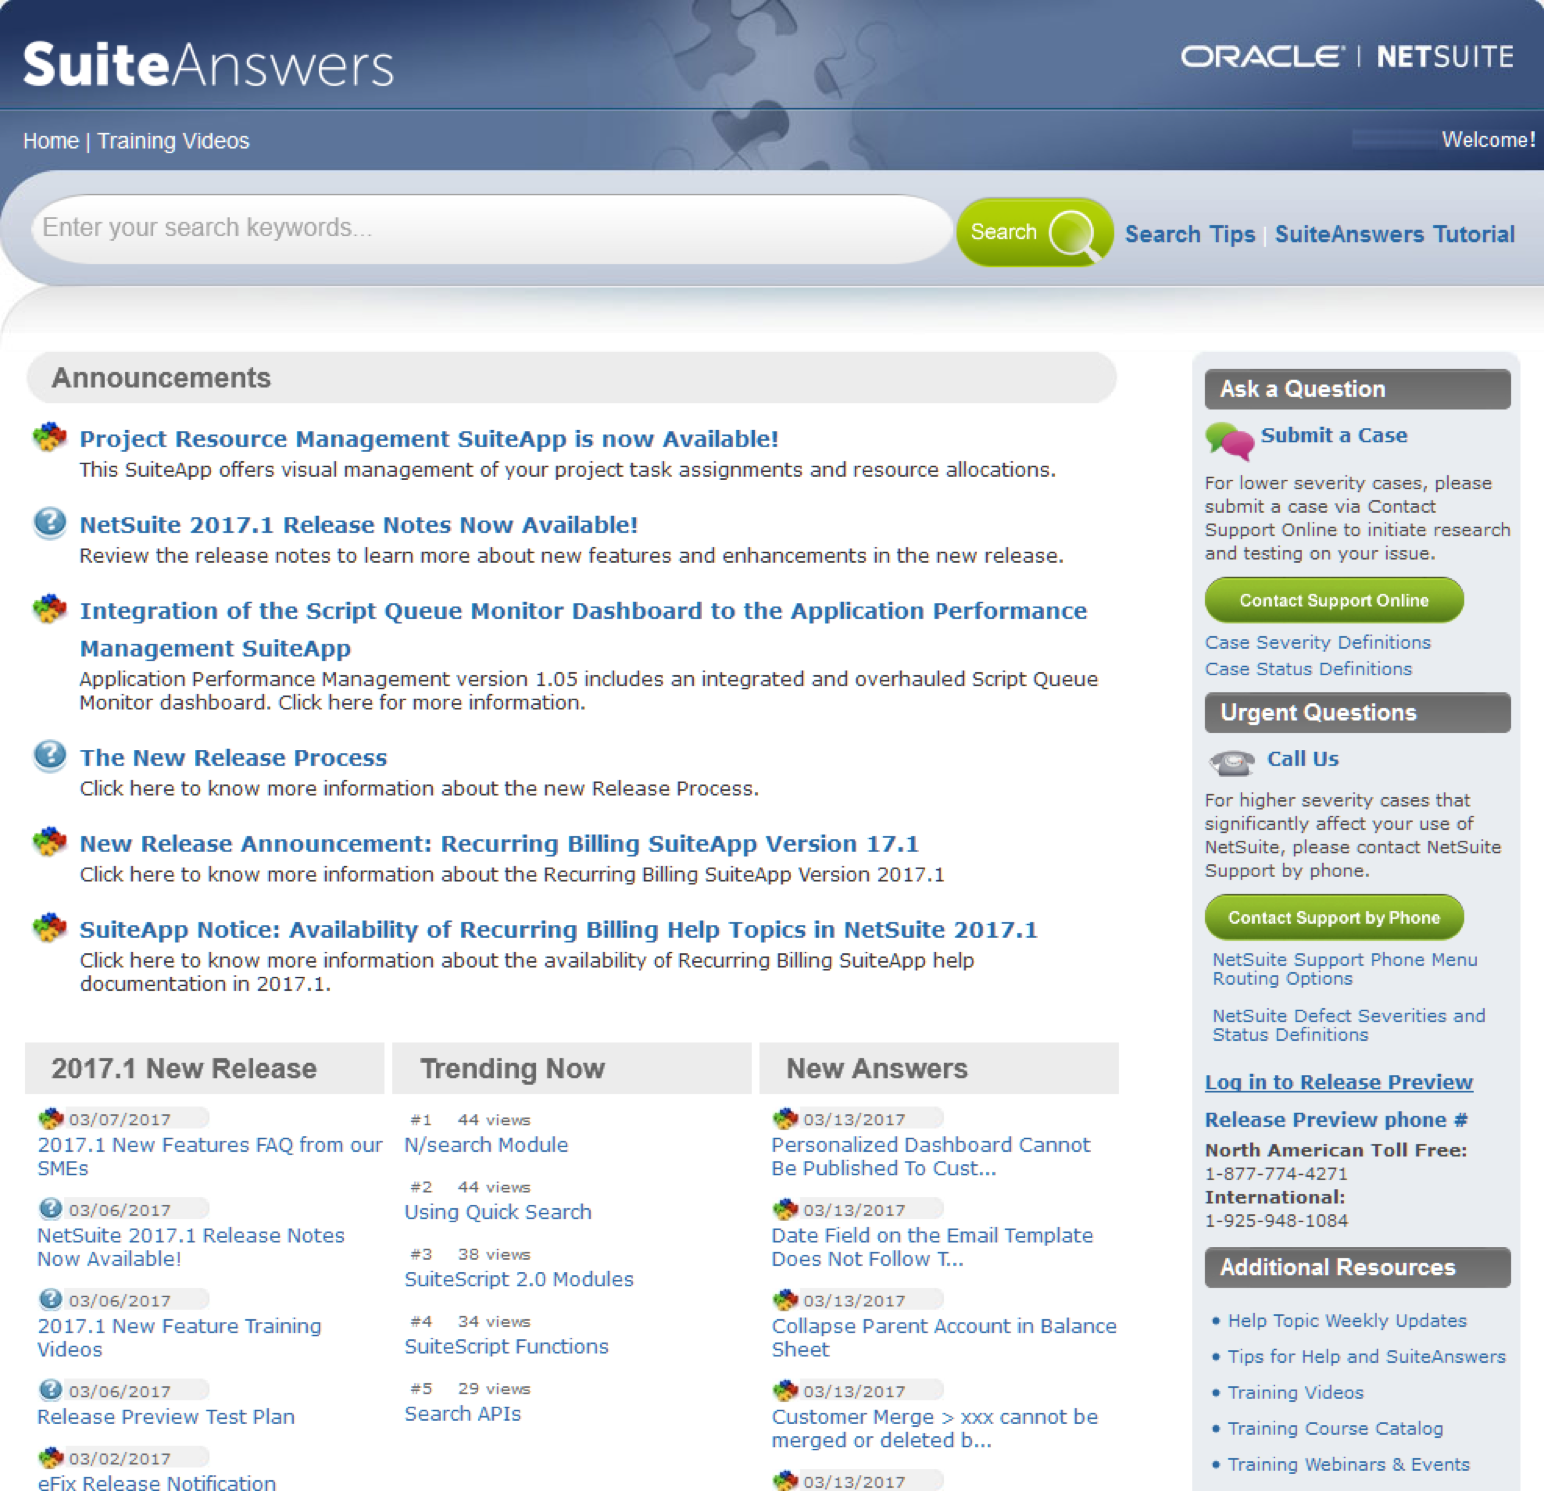 Oracle NetSuite:SuiteAnswers支持和培训视频